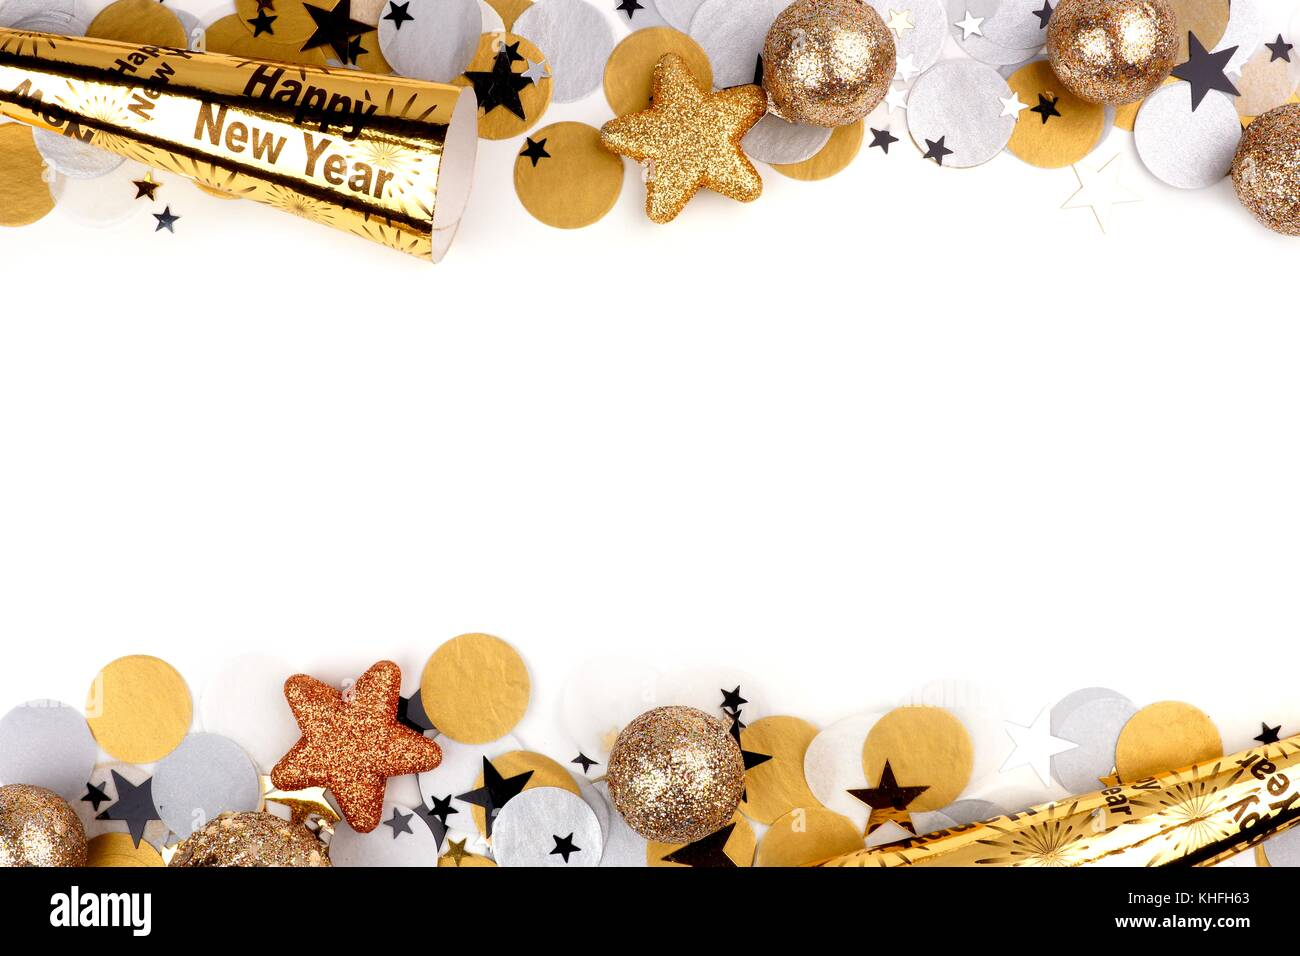 New Years Eve double border of confetti and decor isolated on a white background - Stock Image